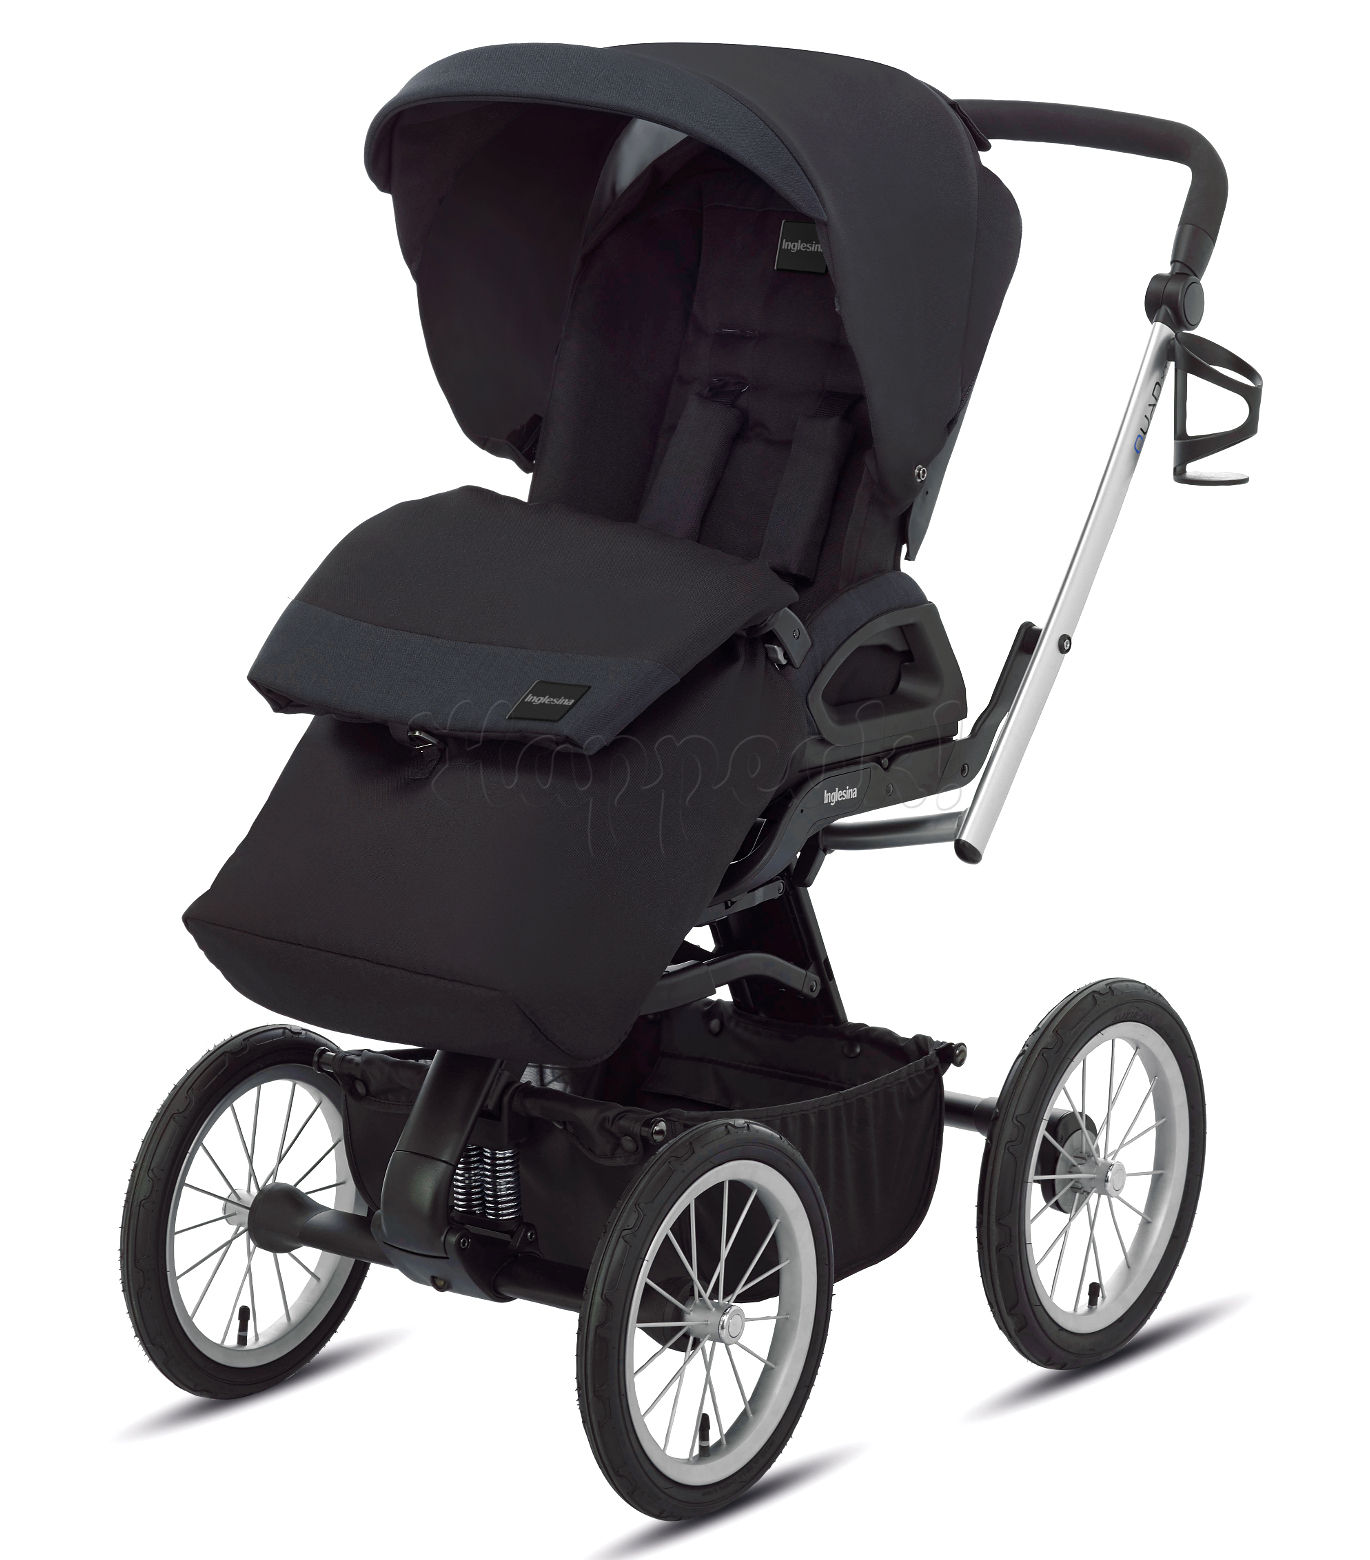 Коляска INGLESINA QUAD TOTAL BLACK 3 В 1 на шасси QUAD XT